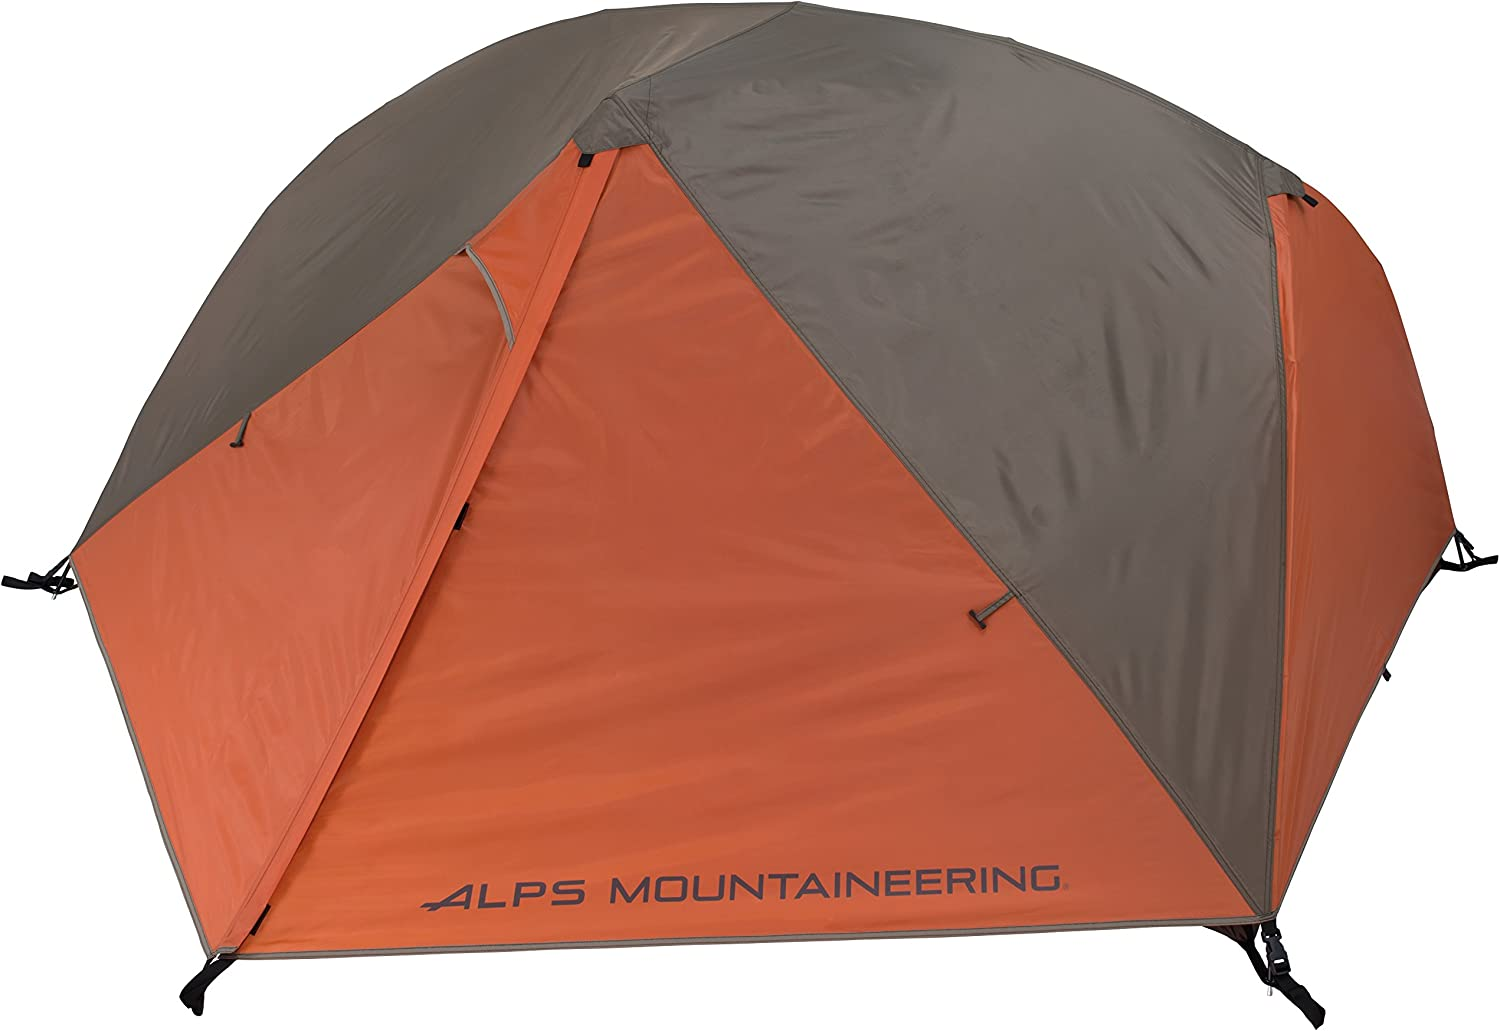 ALPS Mountaineering Chaos 3 Tent, Clay Rust